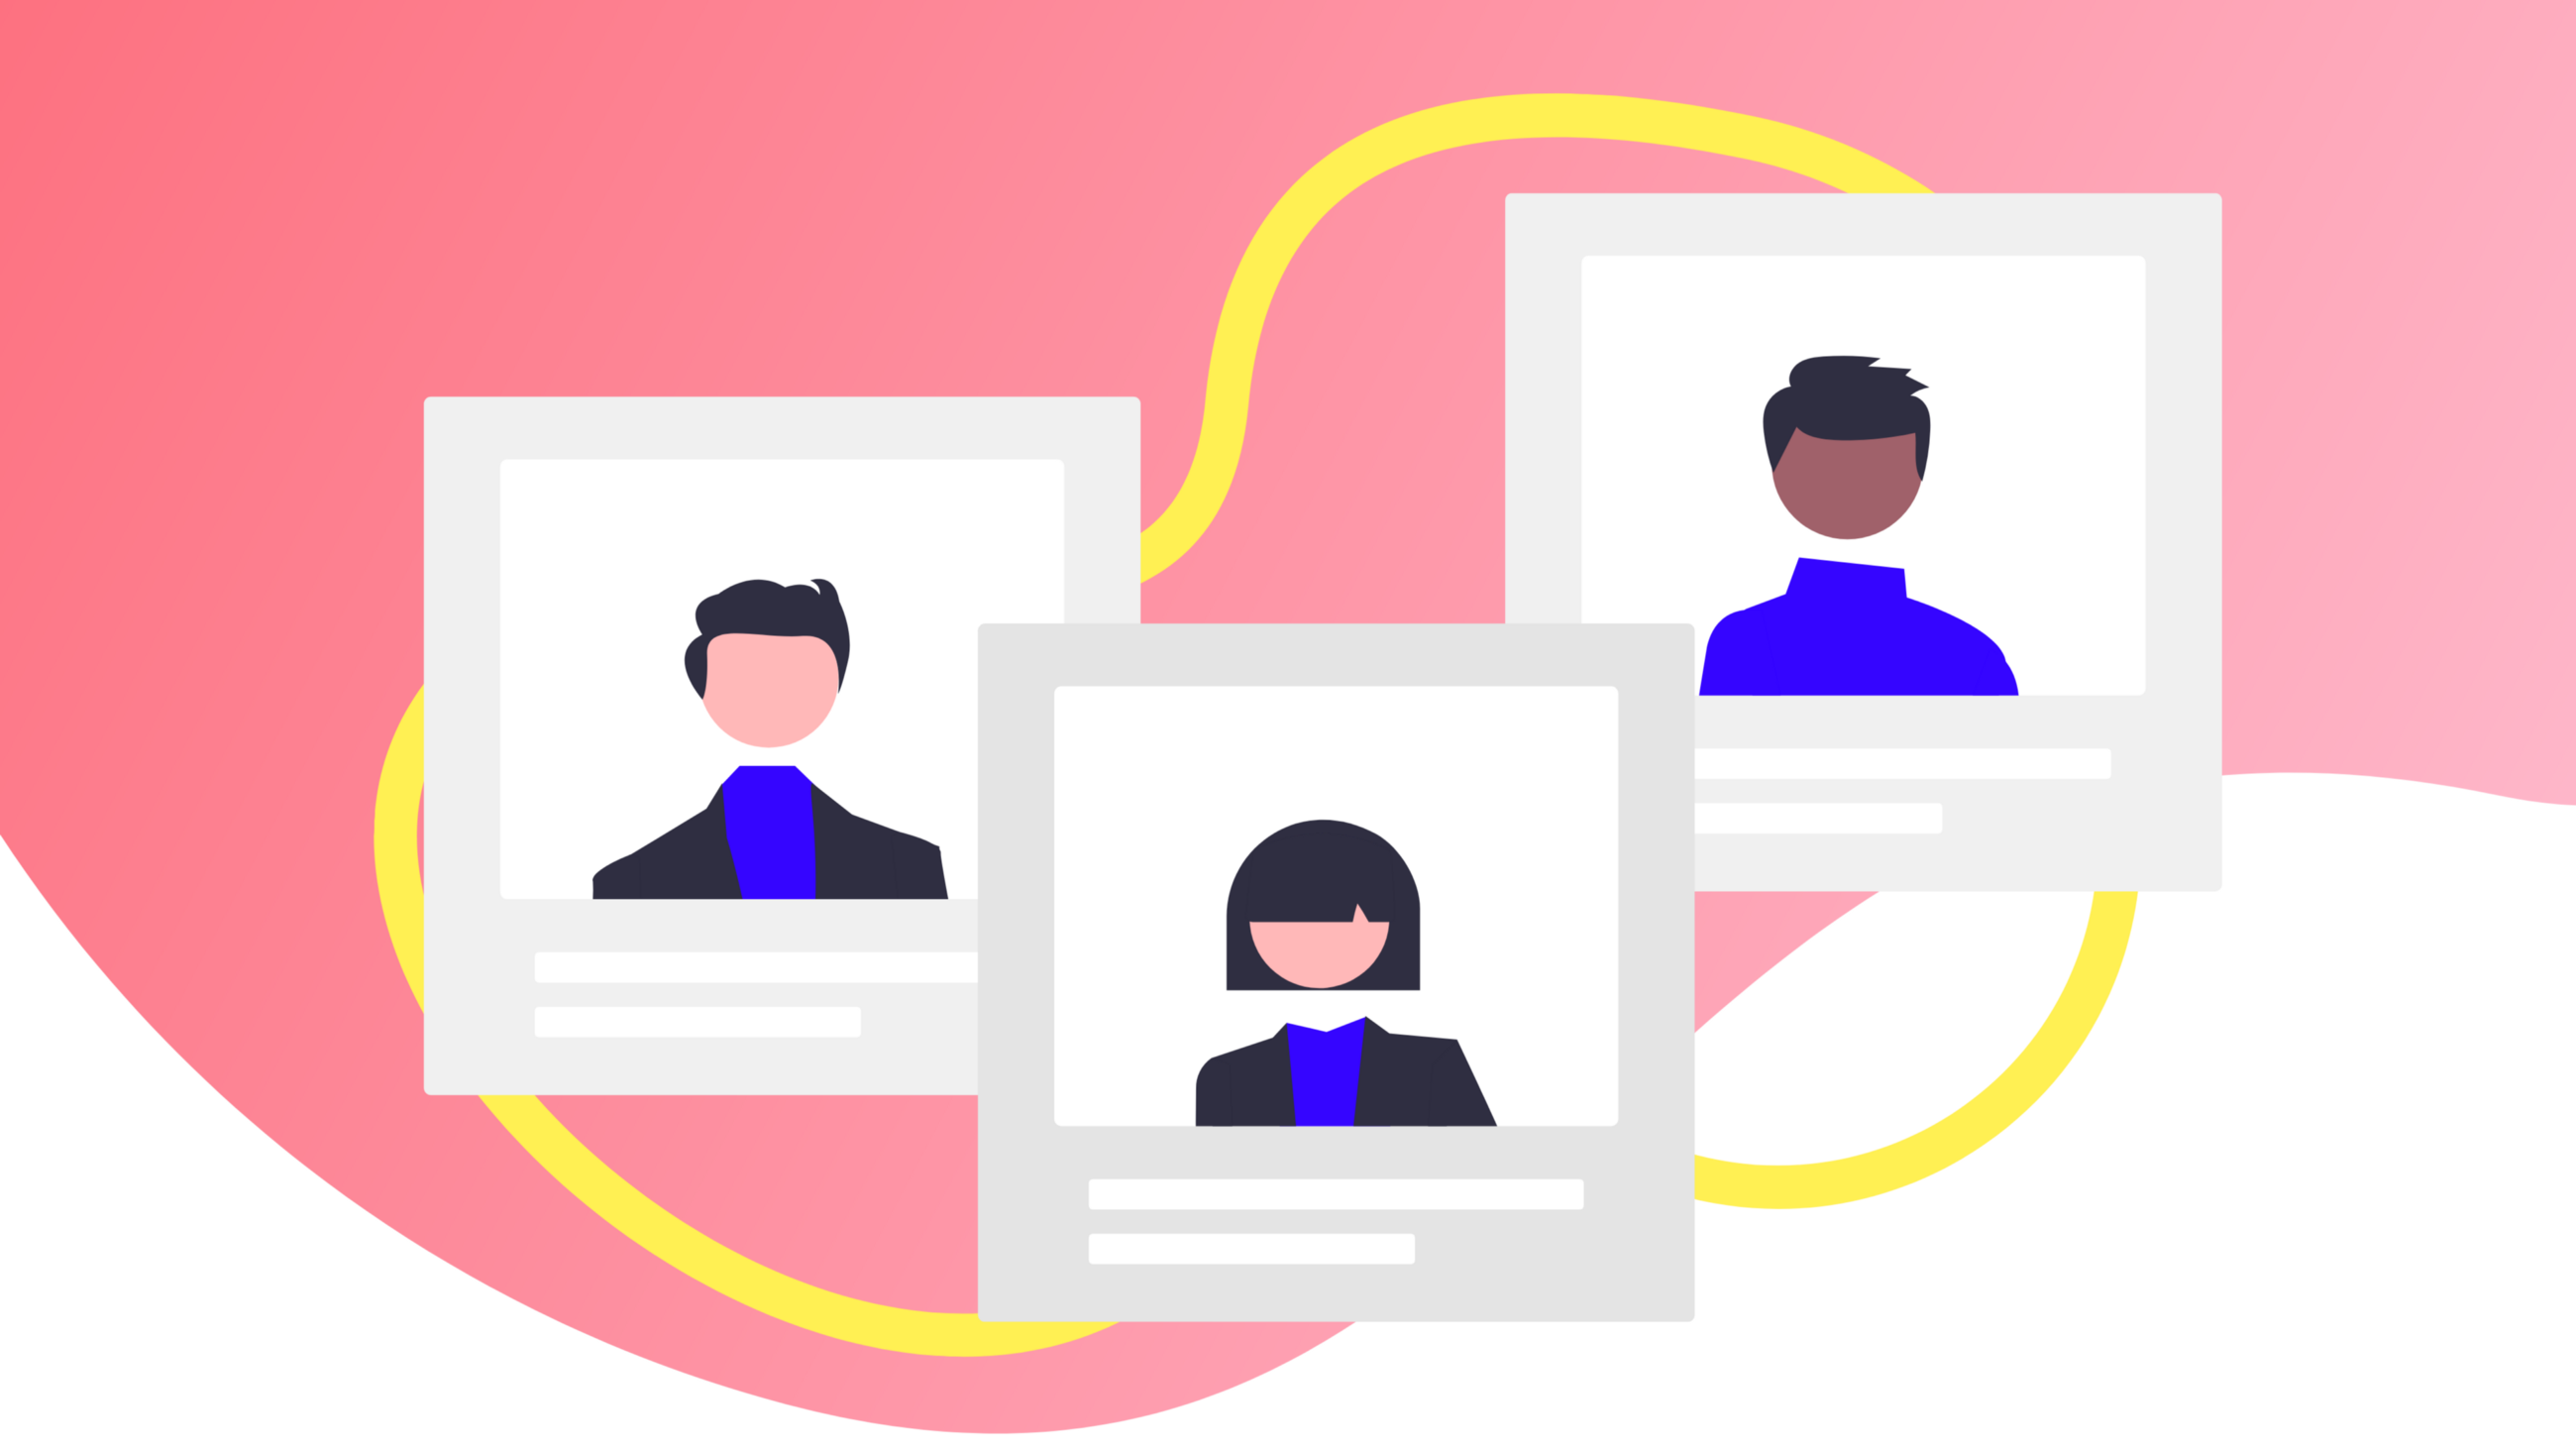 5 Strategies for HR Teams Looking to Build a More Diverse Talent Pool